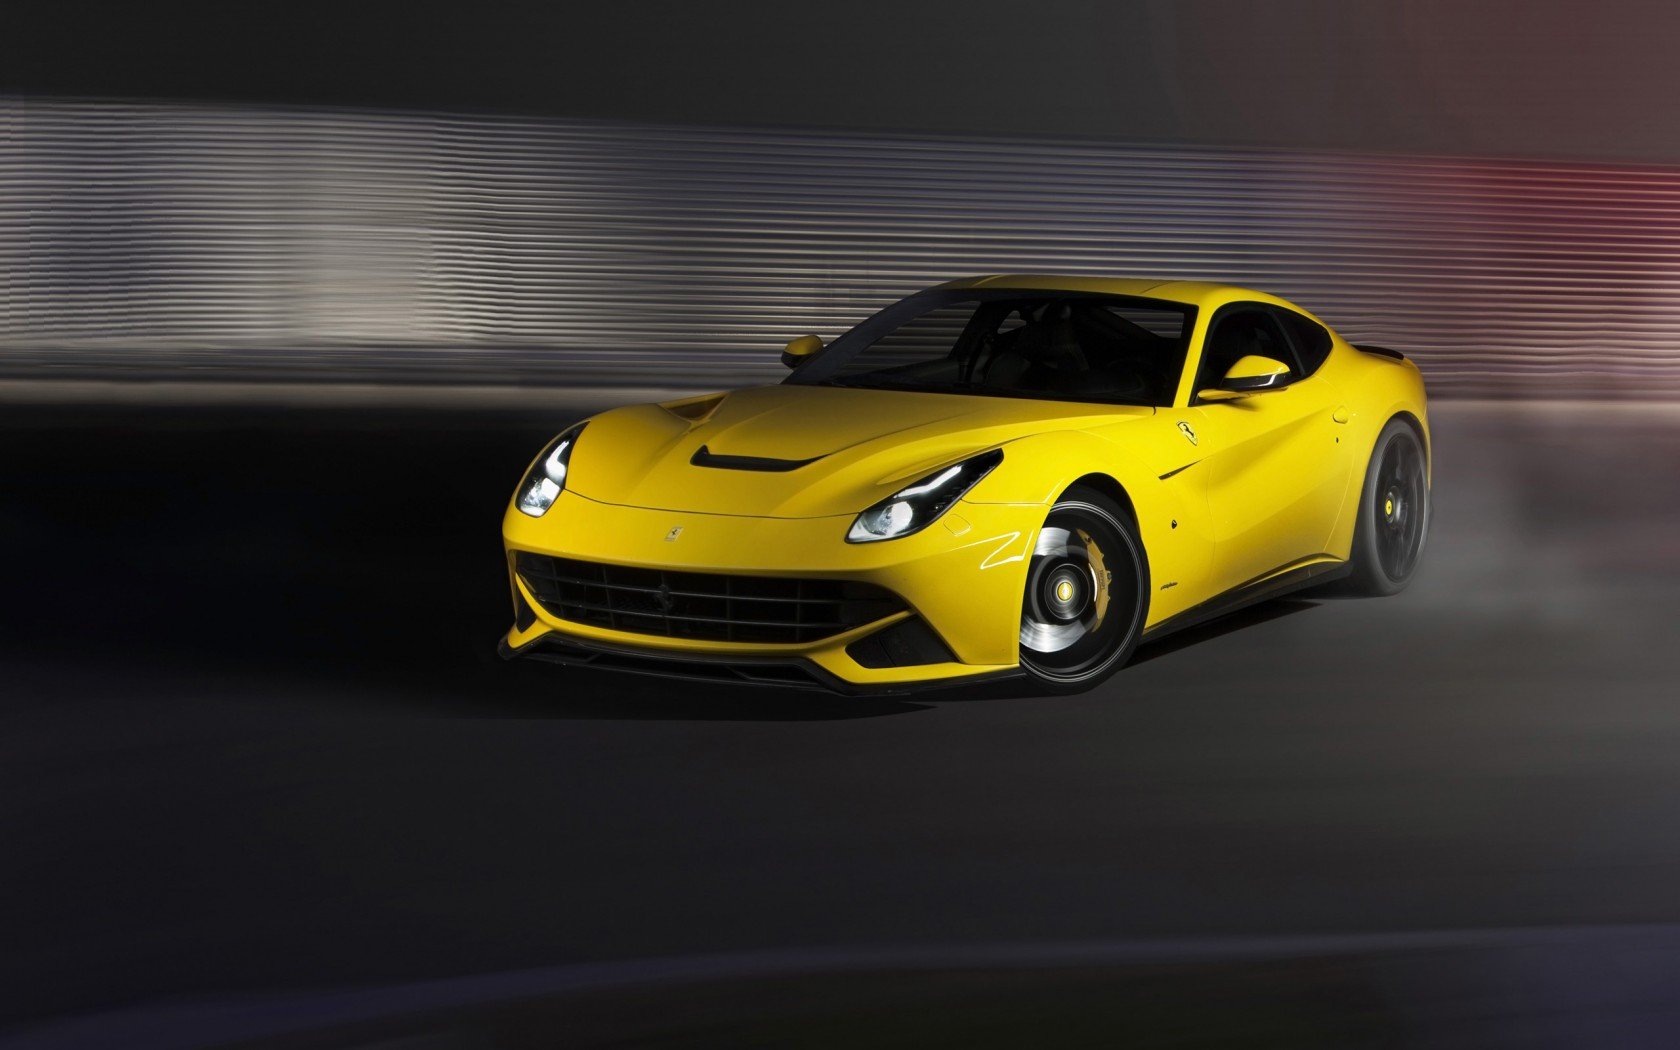 Ultra Hd Desktop Wallpapers 2013 Ferrari F12berlinetta By Novitec Rosso Wallpaper Hd